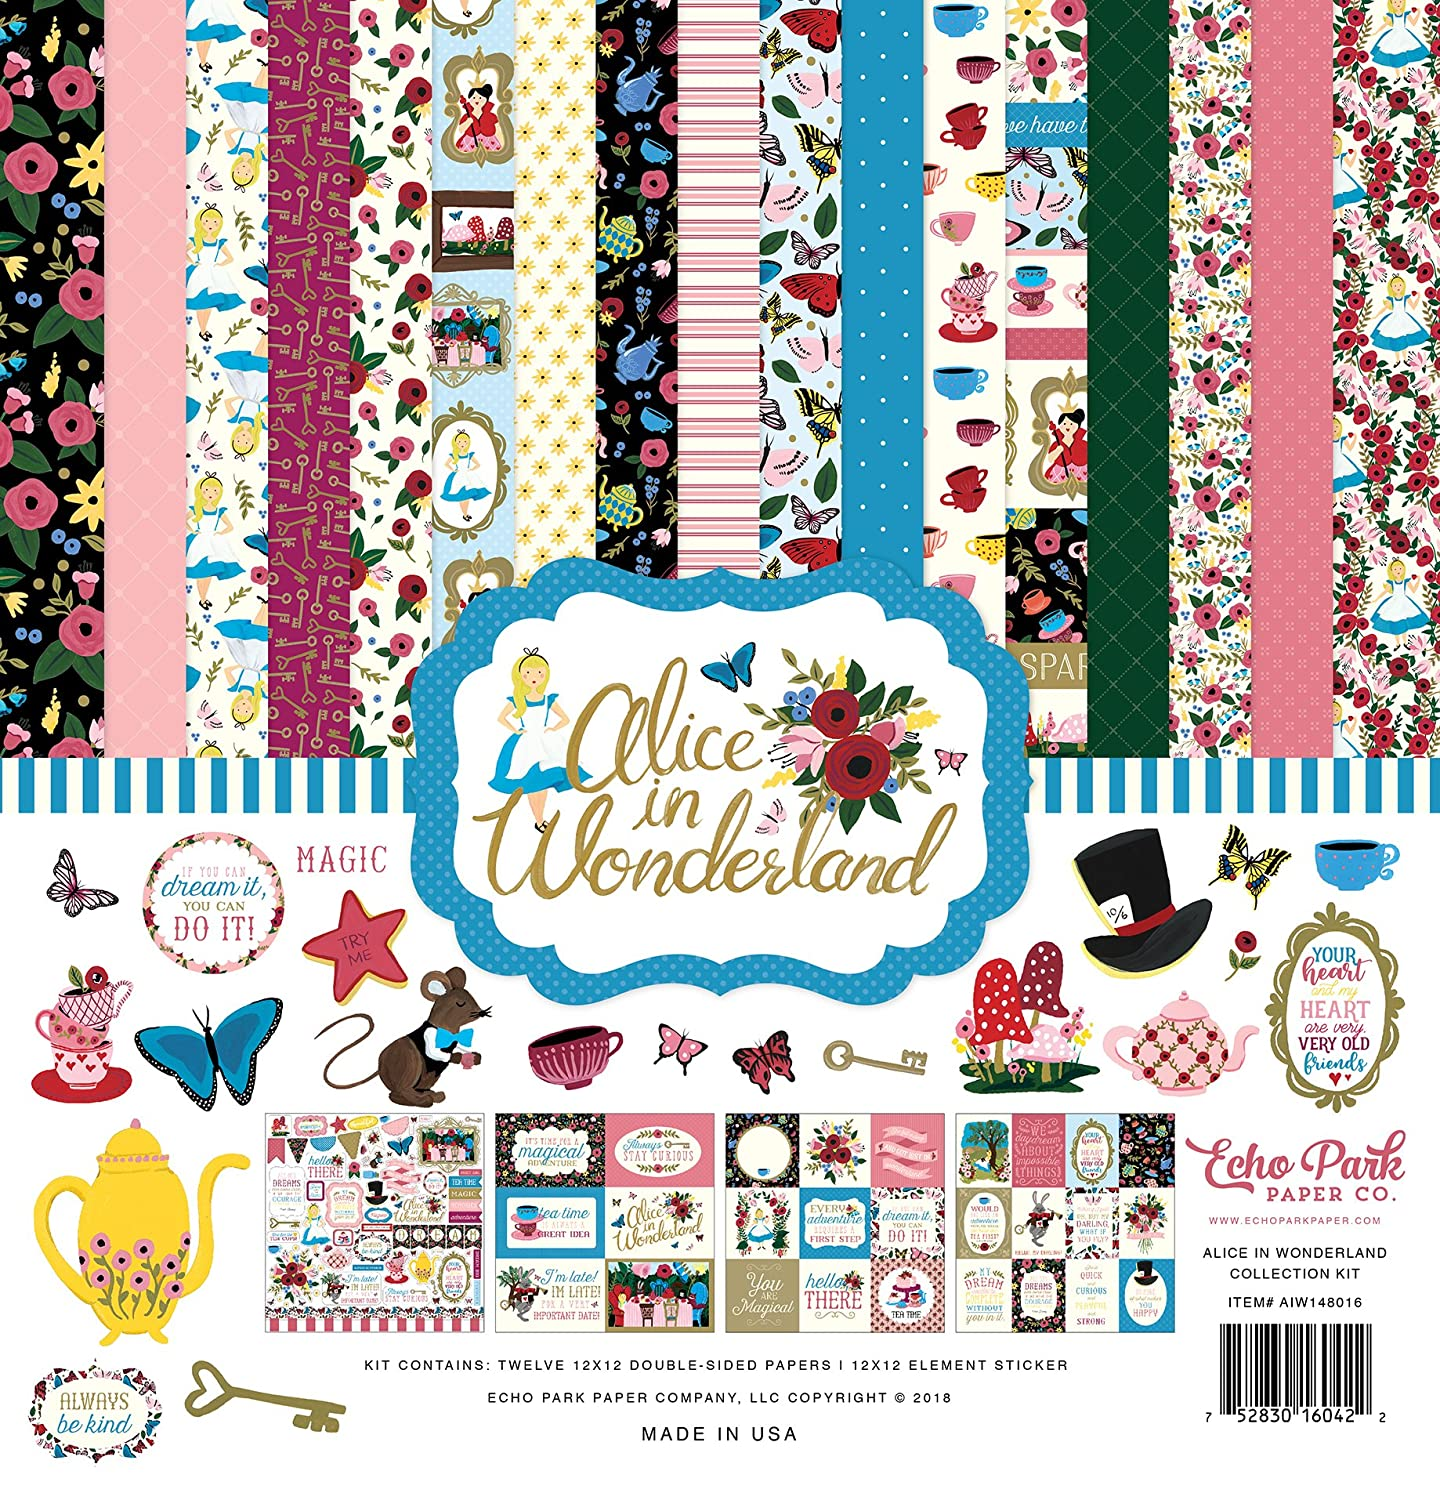 Echo Park Paper Company Alice in Wonderland Collection Kit AIW148016